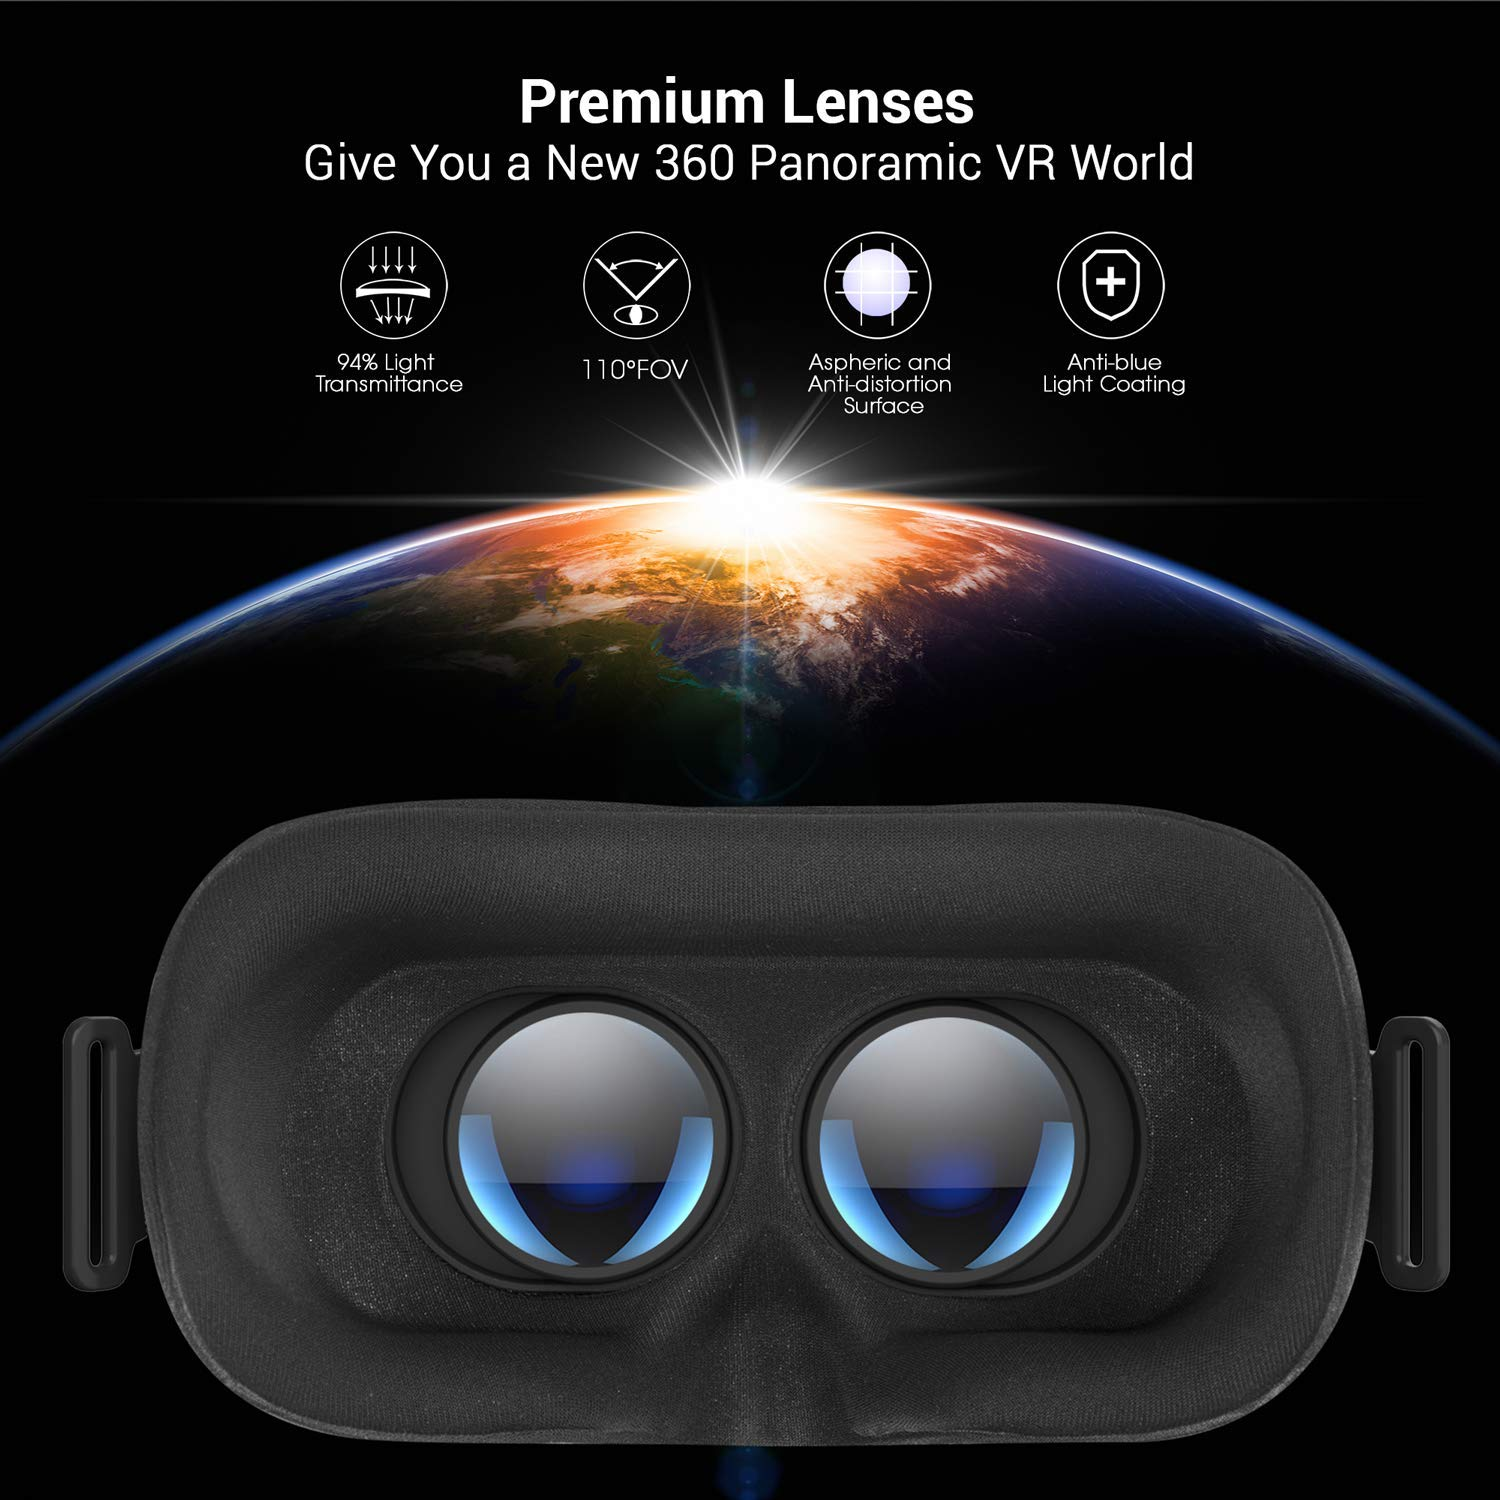 Destek V5 Vr Headset Phones W 5 0 6 5in Screen Samsung S9 S8 S7 S6 Plus Edge Note 9 8 Eye Protected Hd Virtual Reality Headset W Touch Button For Iphone 11 11 Pro Xs Xr Xs Max X Plus 110 Fov